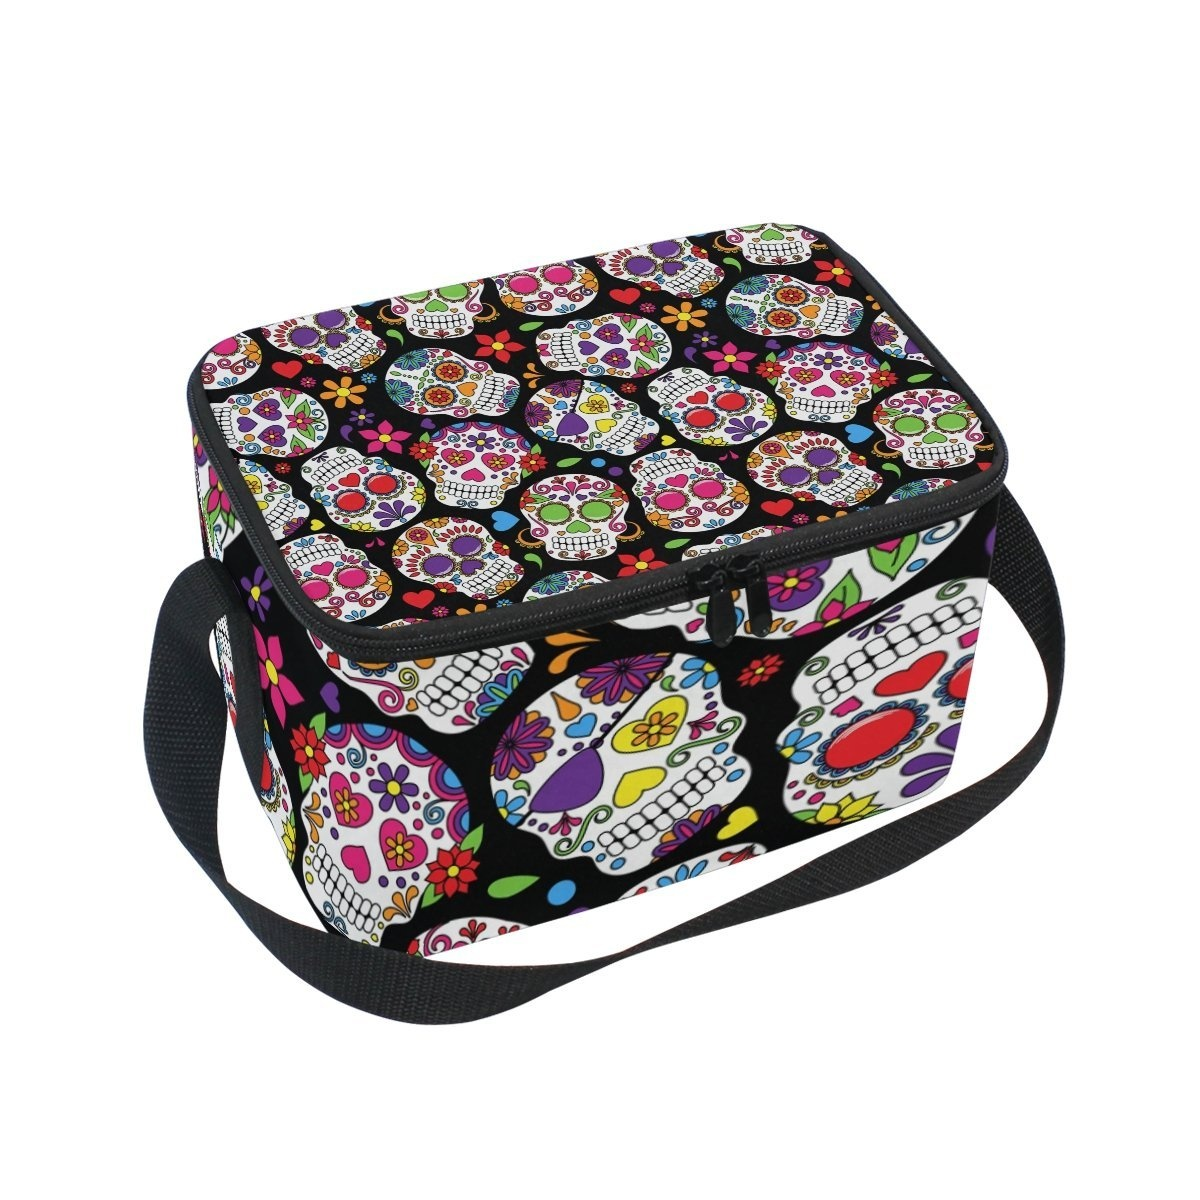 3f7f4cedb914 COOSUN Day Of The Dead Sugar Skull Insulated Lunch Box Bag Cooler Reusable  Tote Bag with Adjustable Shoulder Strap for Women Men